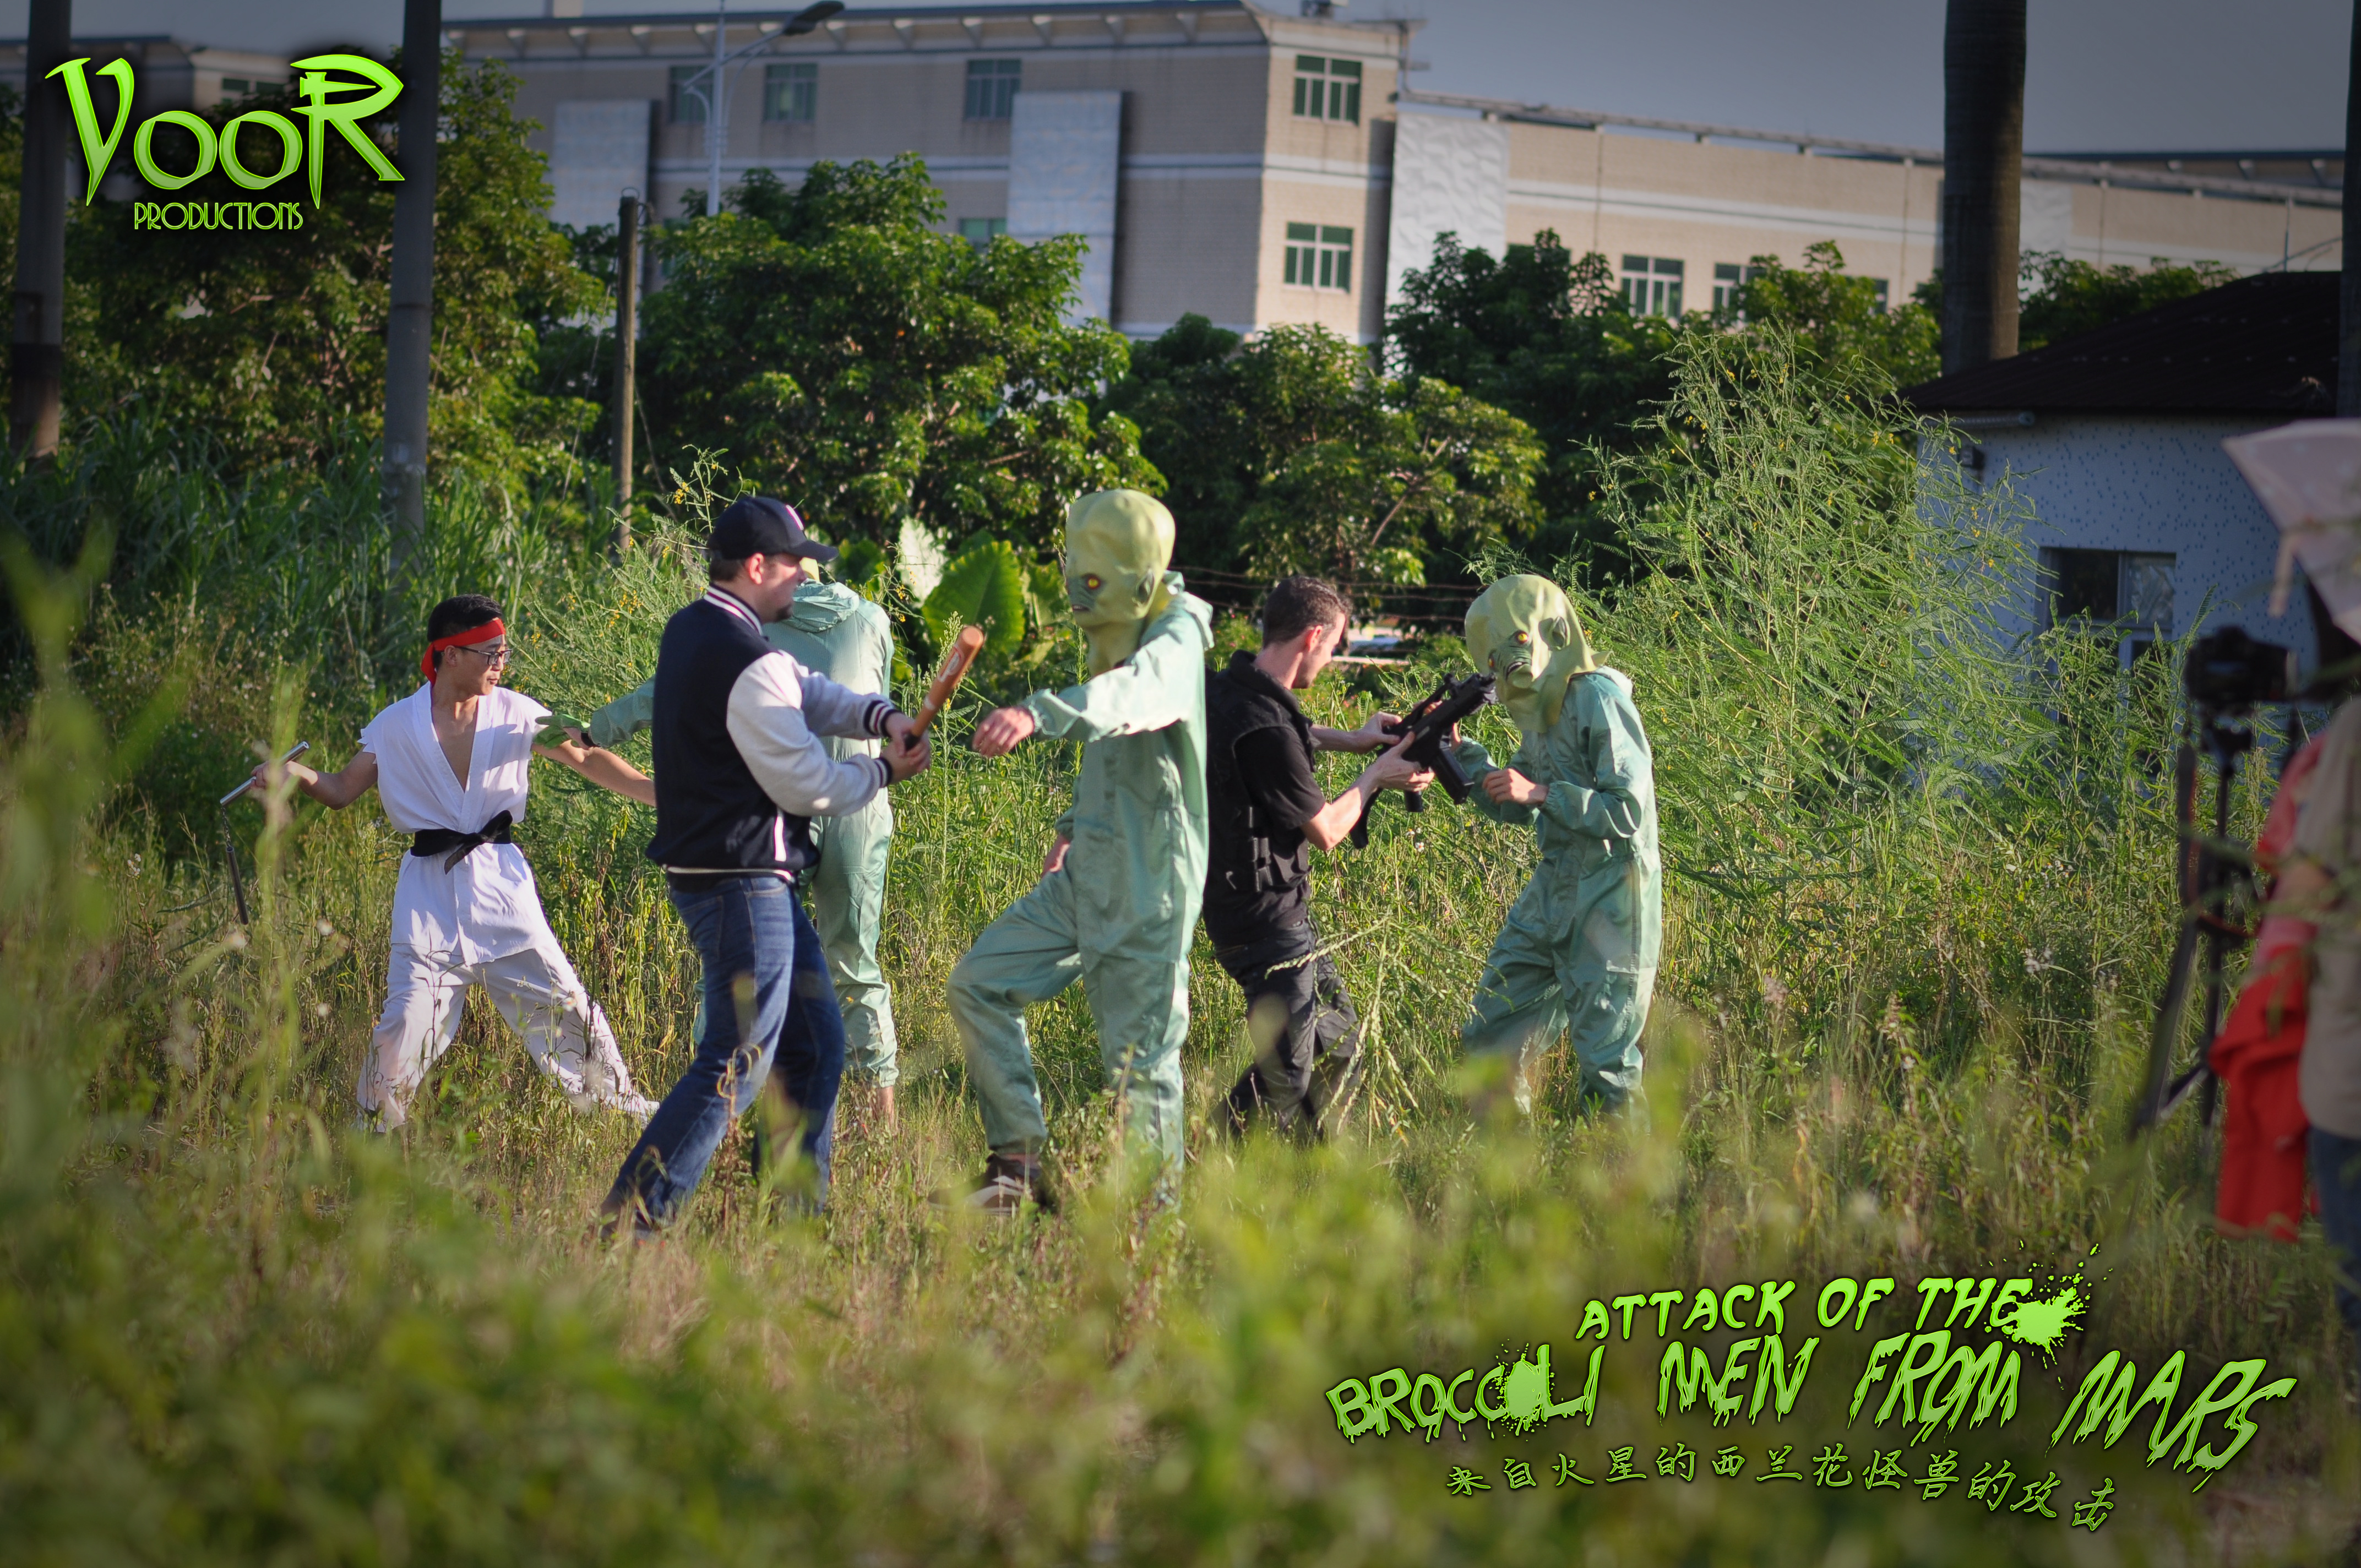 Attack of the Broccoli Men from Mars